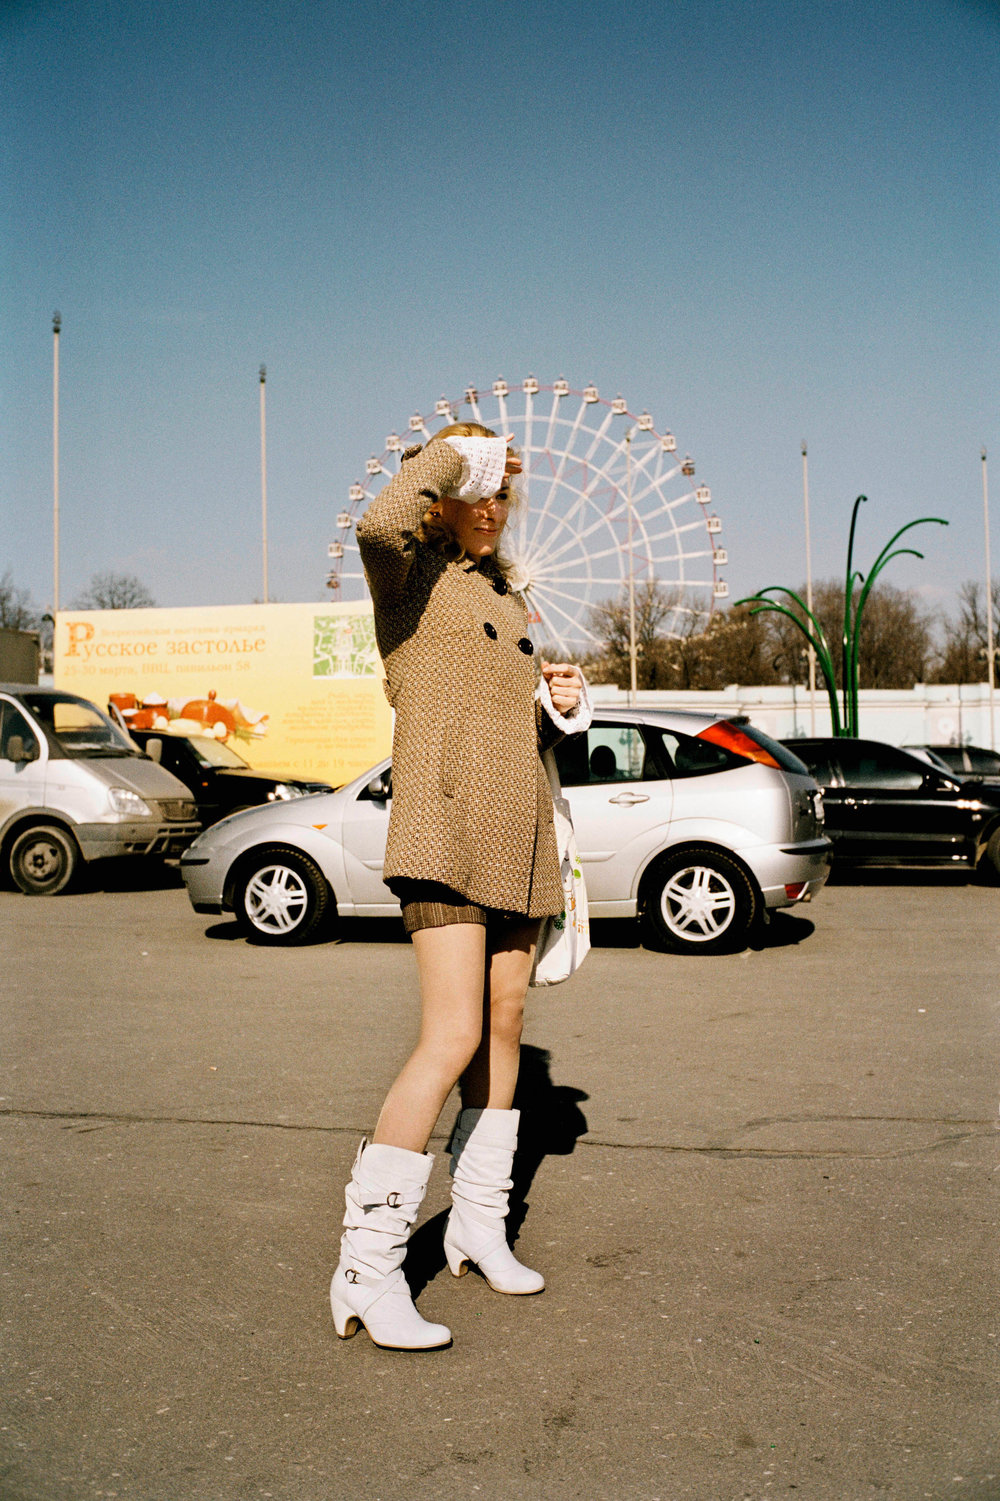 Andreas Herzau, Girl, aus der Serie: Moscow Street, 2008. Courtesy of Andreas Herzau / Galerie SOIZ Copyright © Andreas Herzau / courtesy Galerie SOIZ